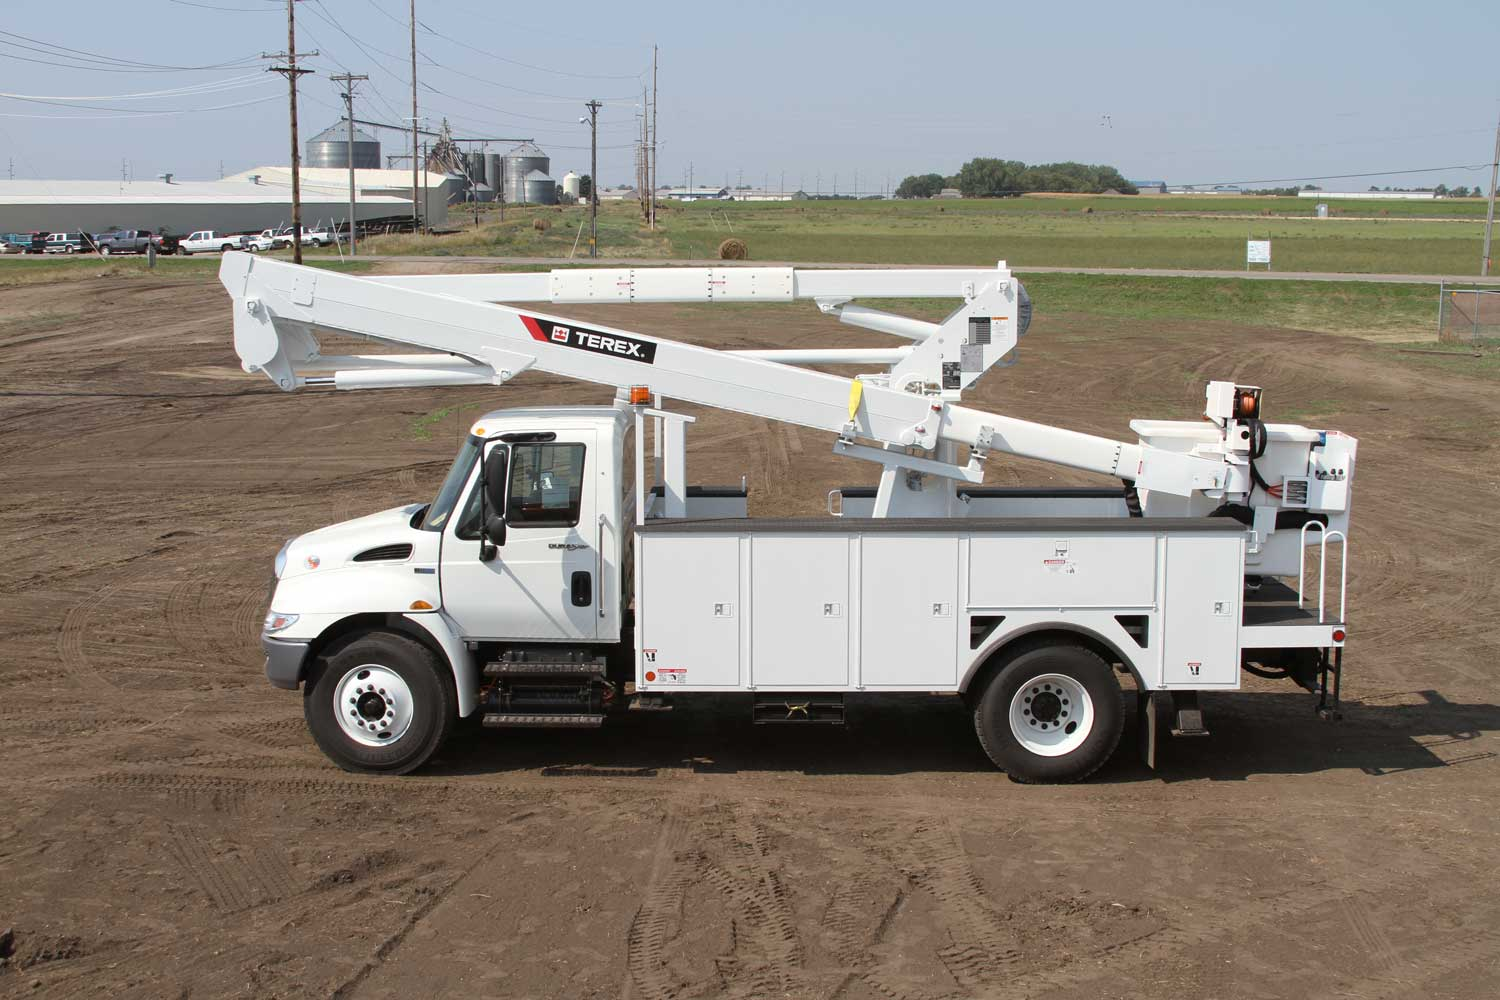 terex hi ranger telescopic aerial devices terex utilities 1990 Ford Ranger Wiring Diagram hi ranger tl series